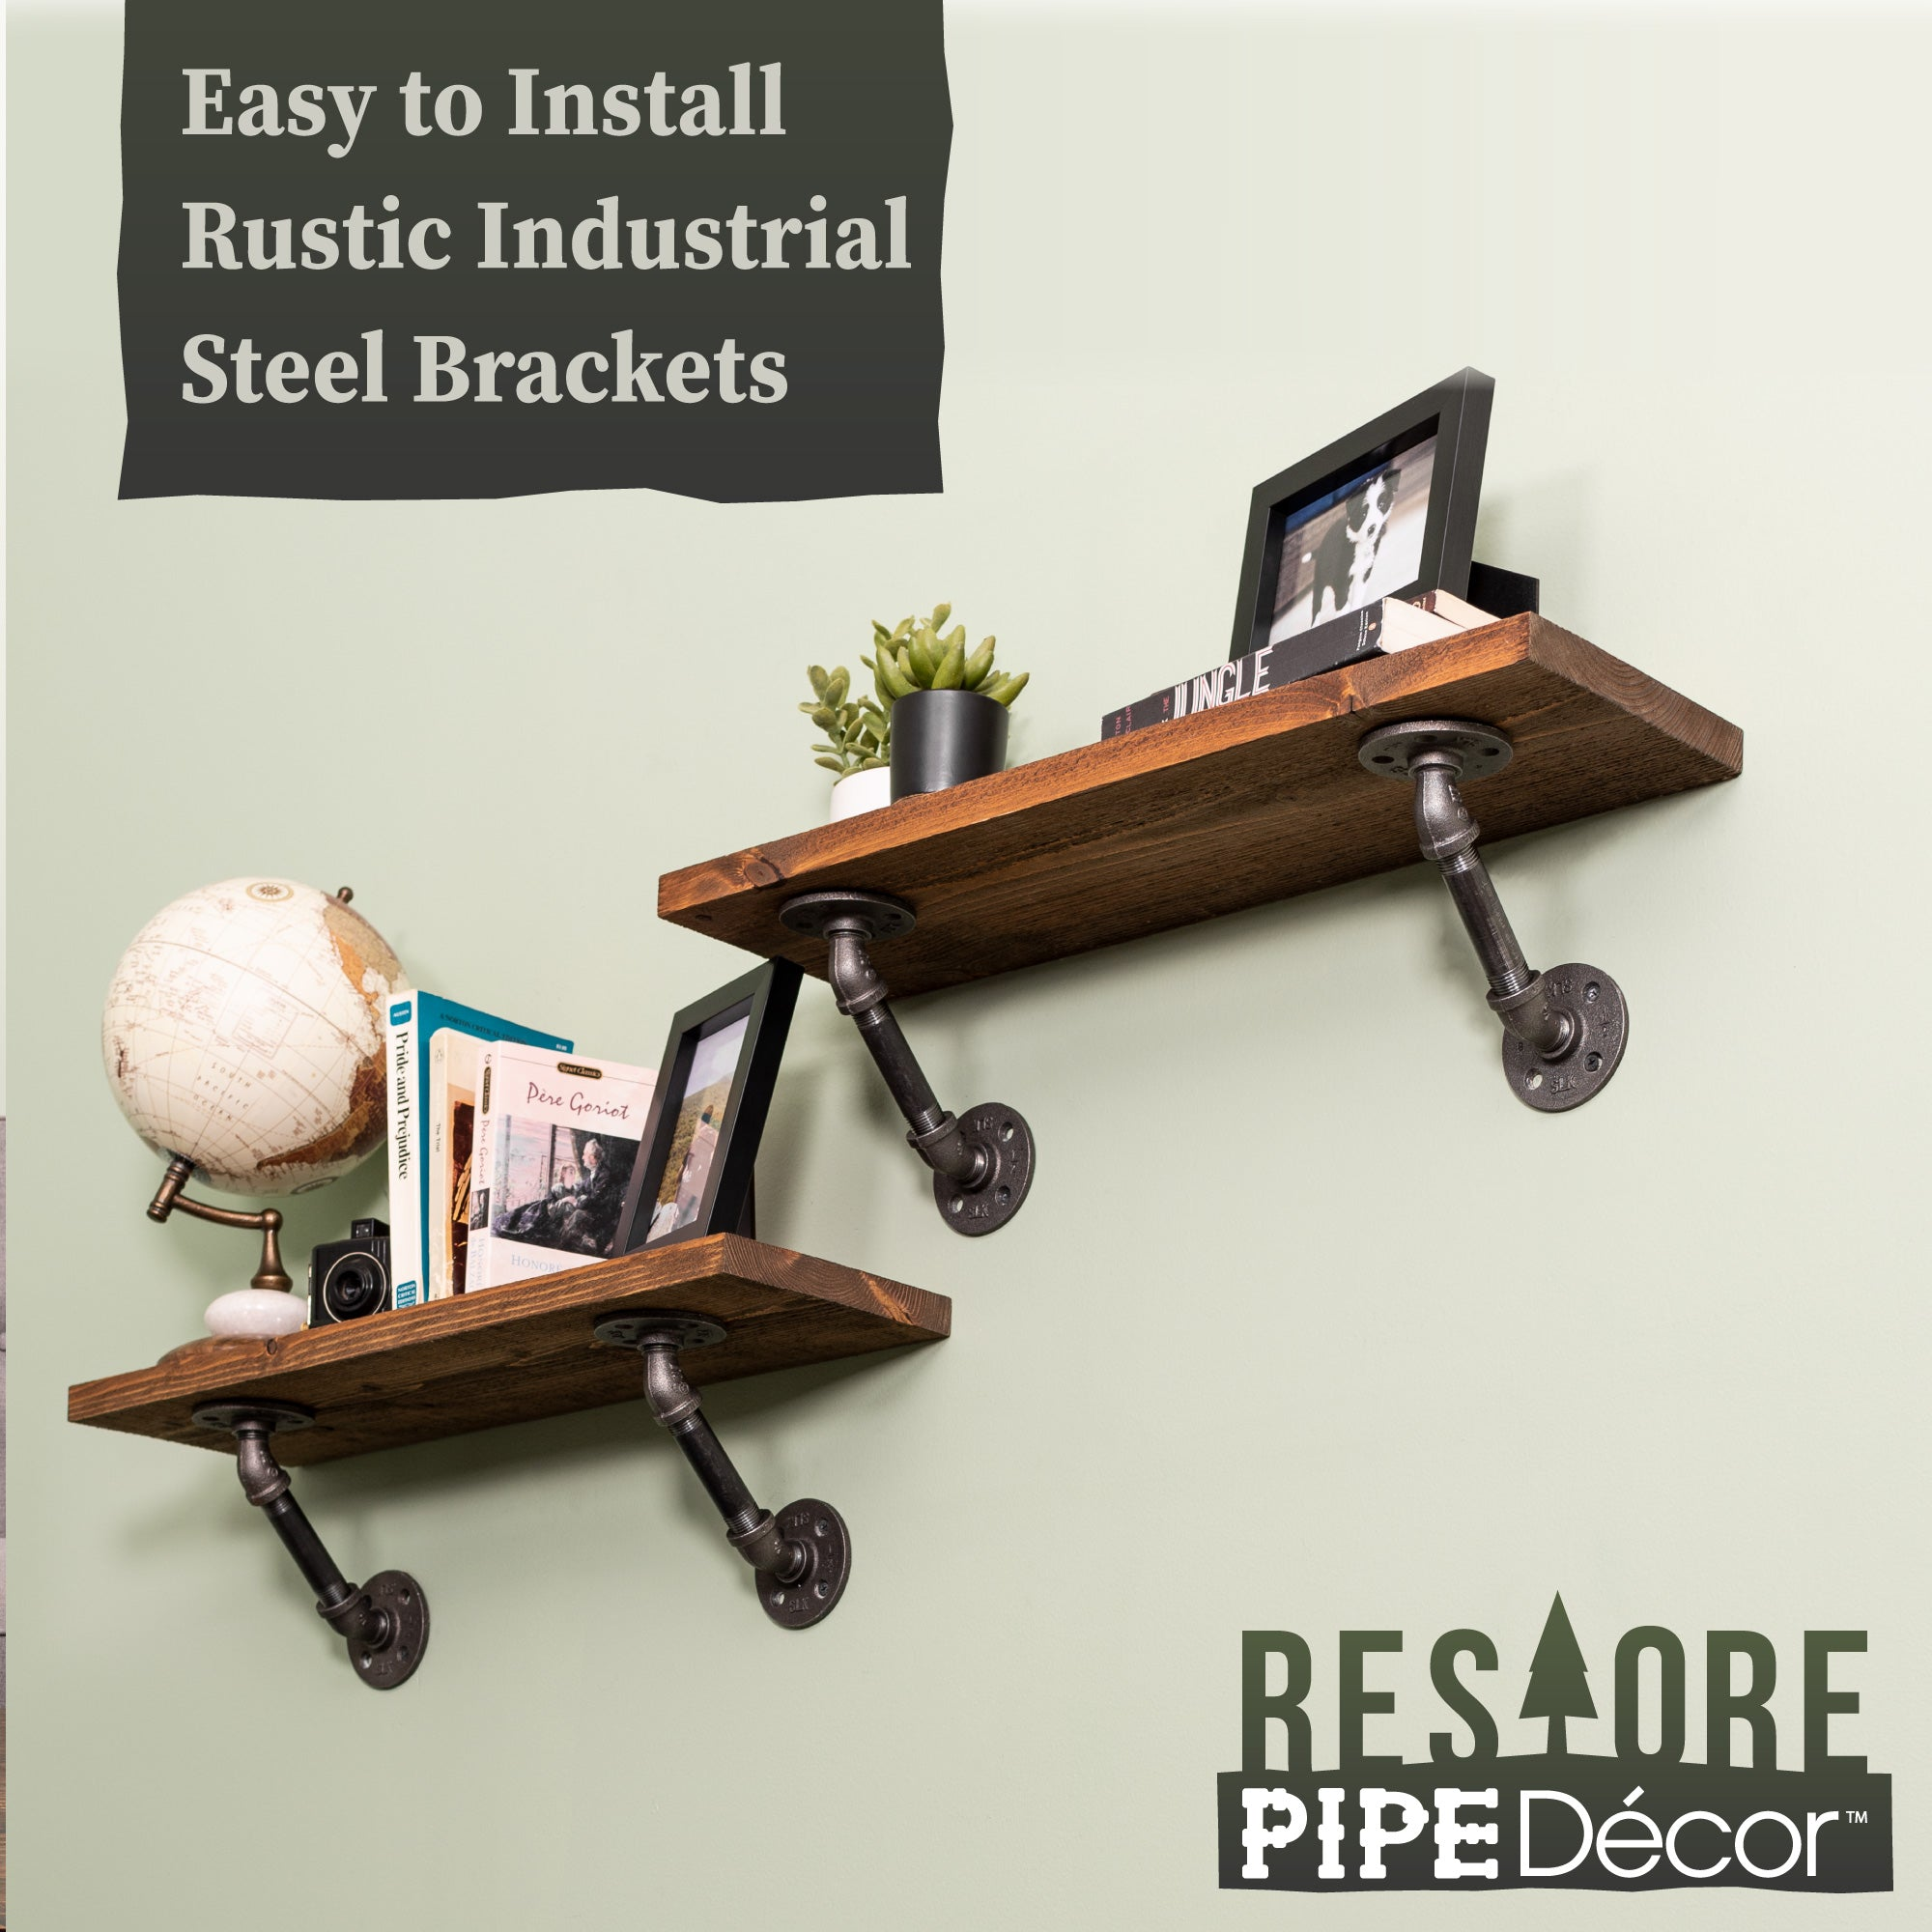 Restore Autumn Brown 24 in. Shelves with Angled Brackets - Pipe Decor